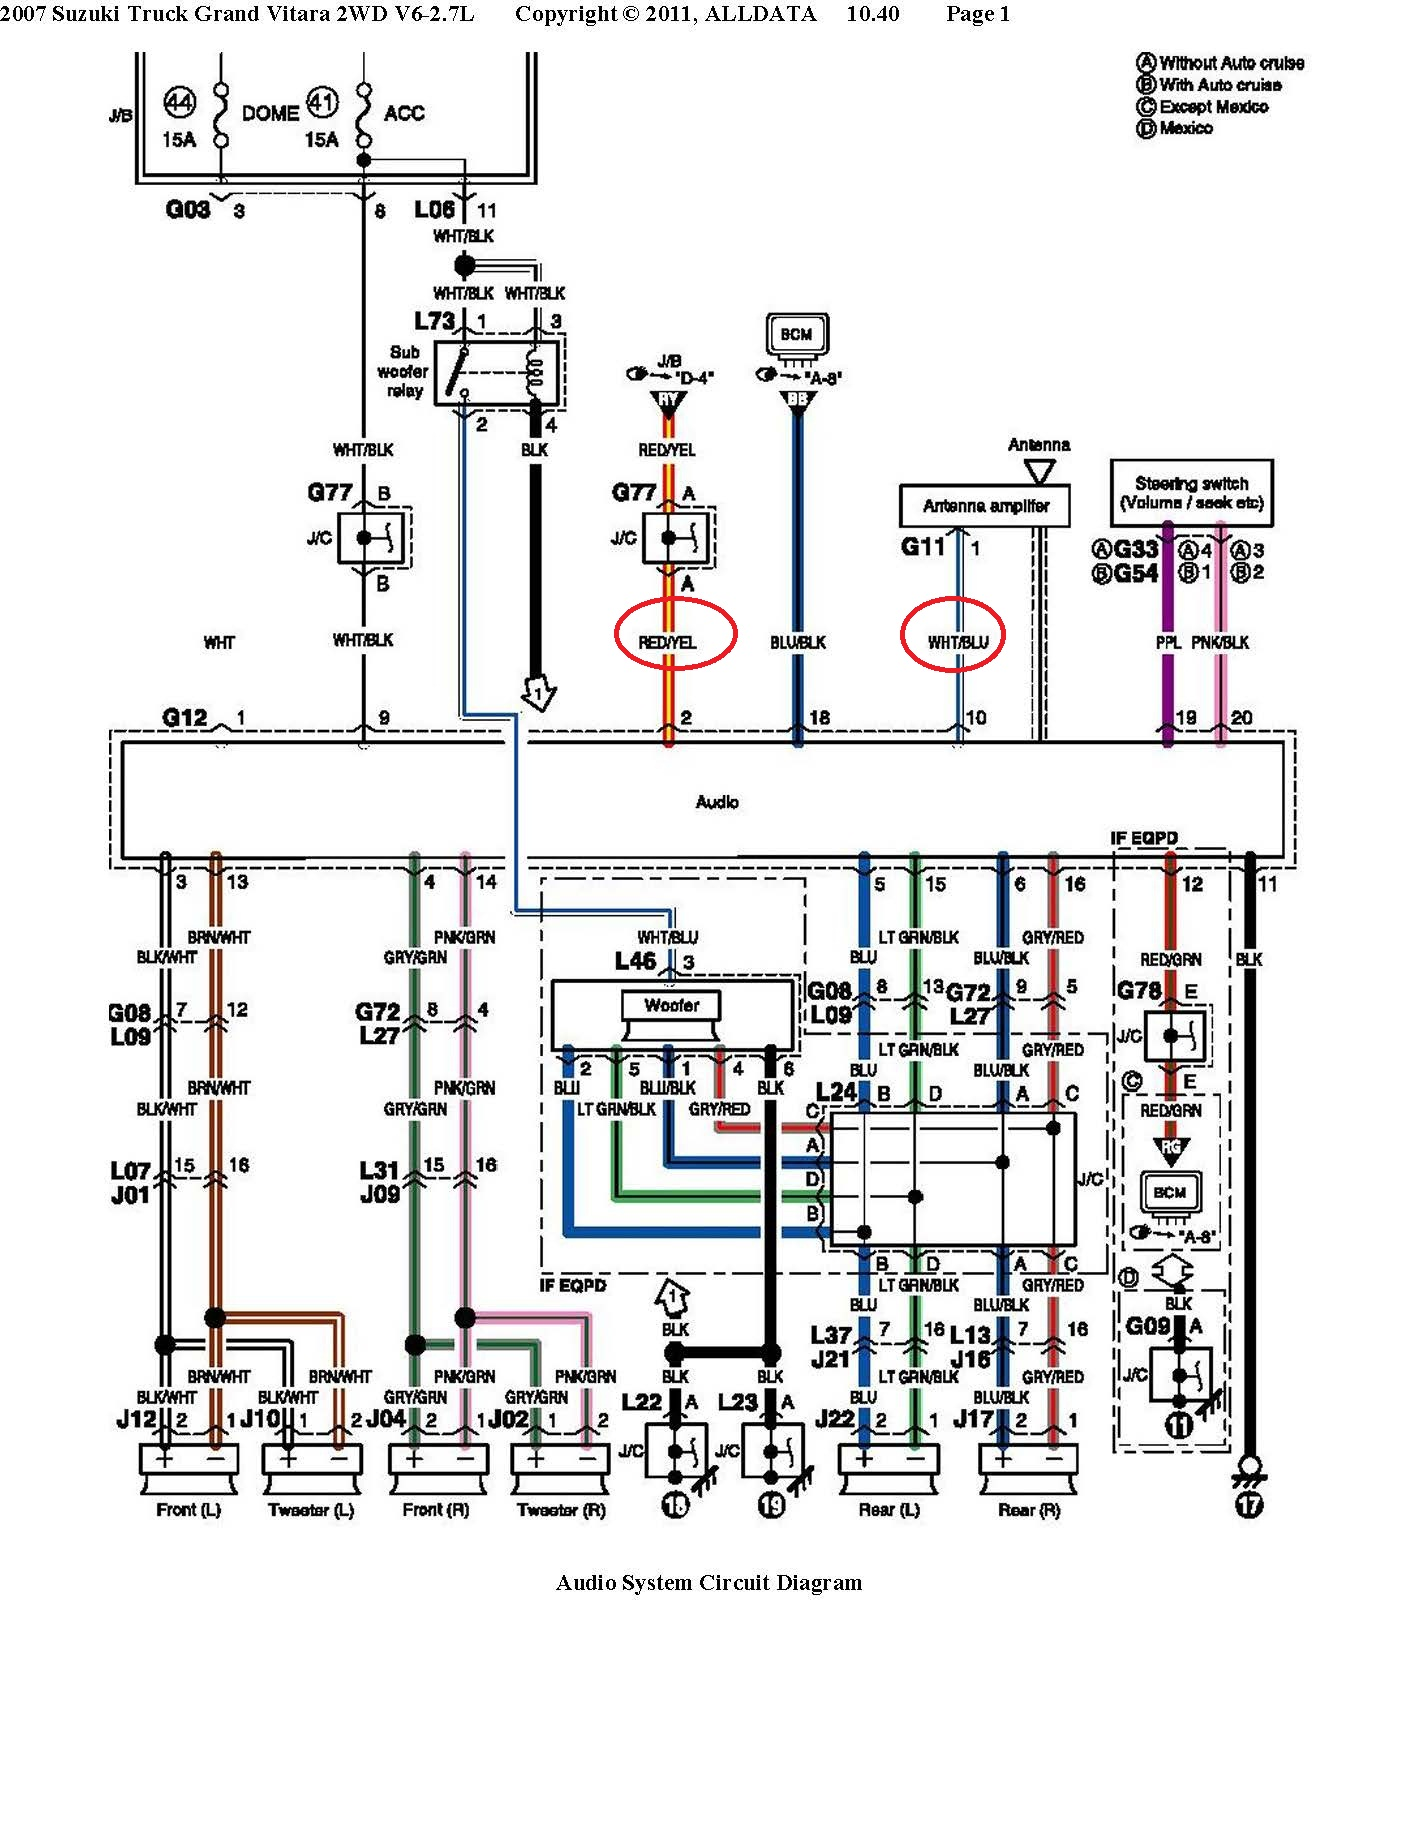 Suzuki Car Radio Stereo Audio Wiring Diagram Autoradio Connector Speaker Jack Connection Wire Installation Schematic Schema Esquema De Conexiones Stecker Konektor Connecteur Cable